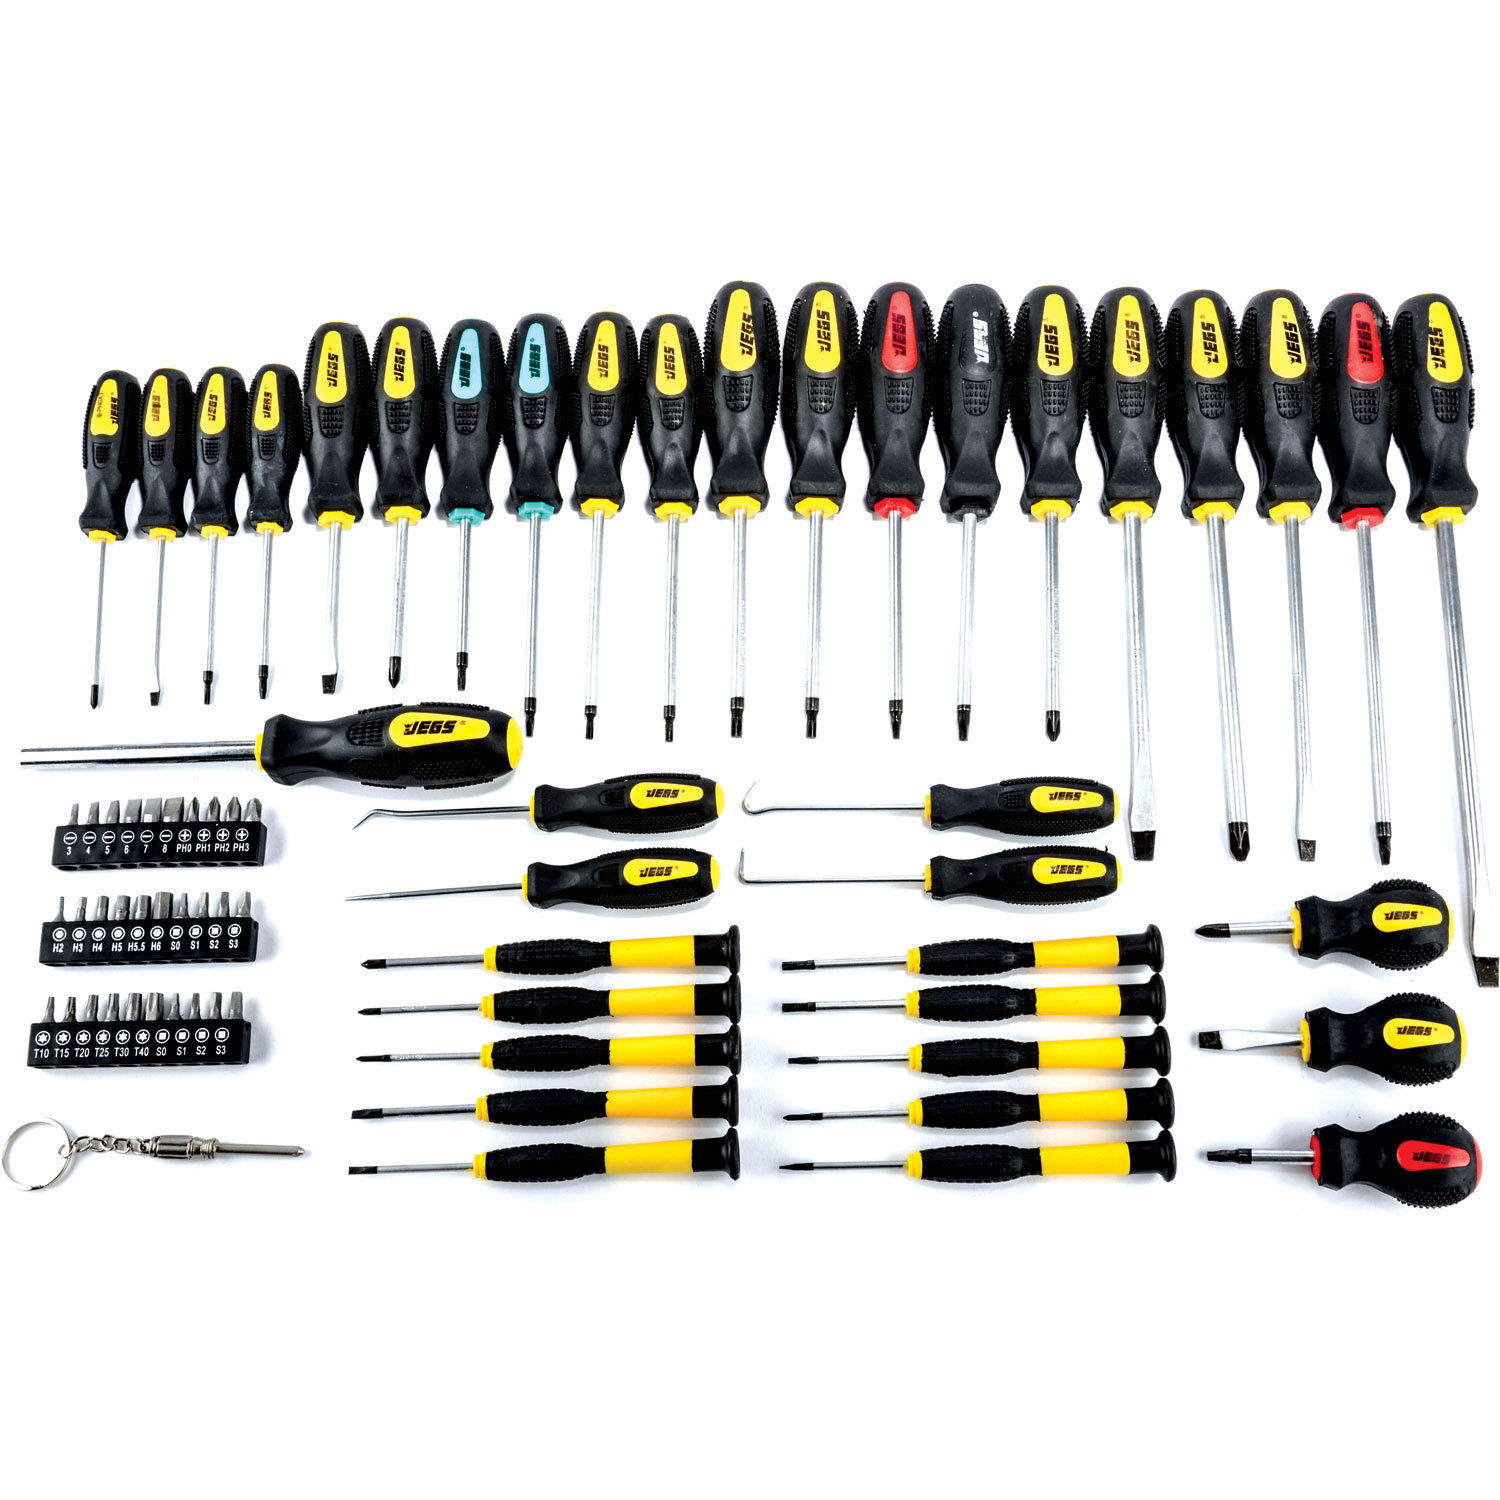 jegs 69 pc magnetic screwdriver set awls torx square phillips slotted bits 80755 was 27. Black Bedroom Furniture Sets. Home Design Ideas